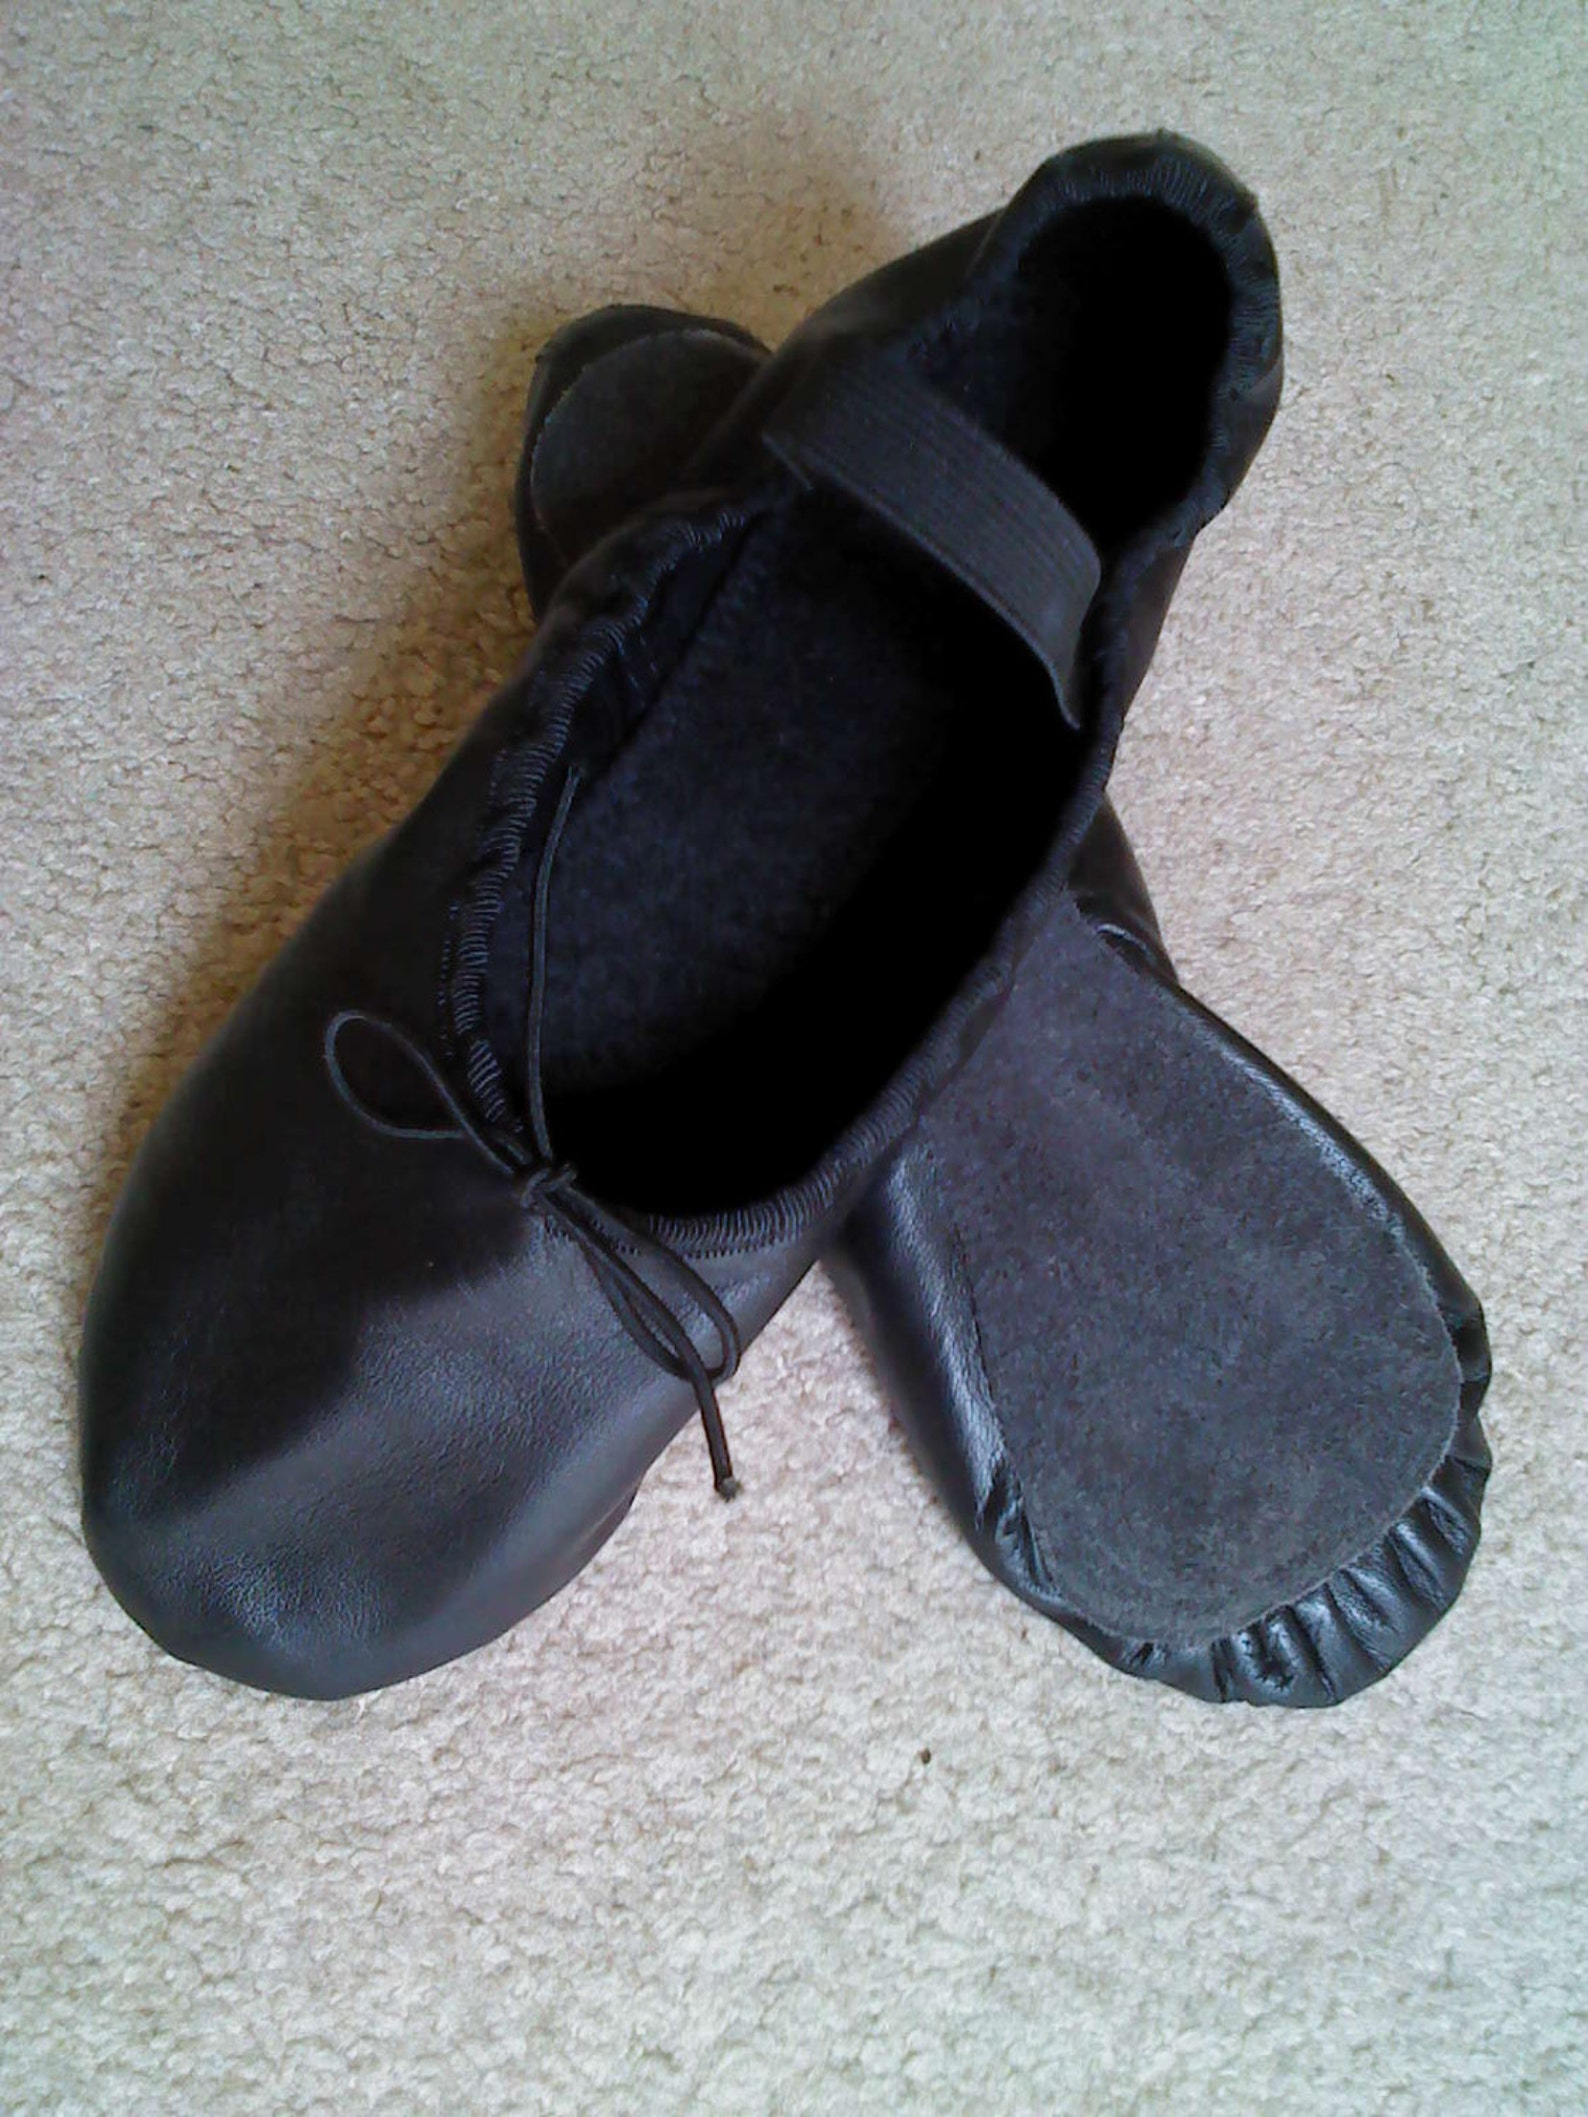 black leather ballet shoes - full sole